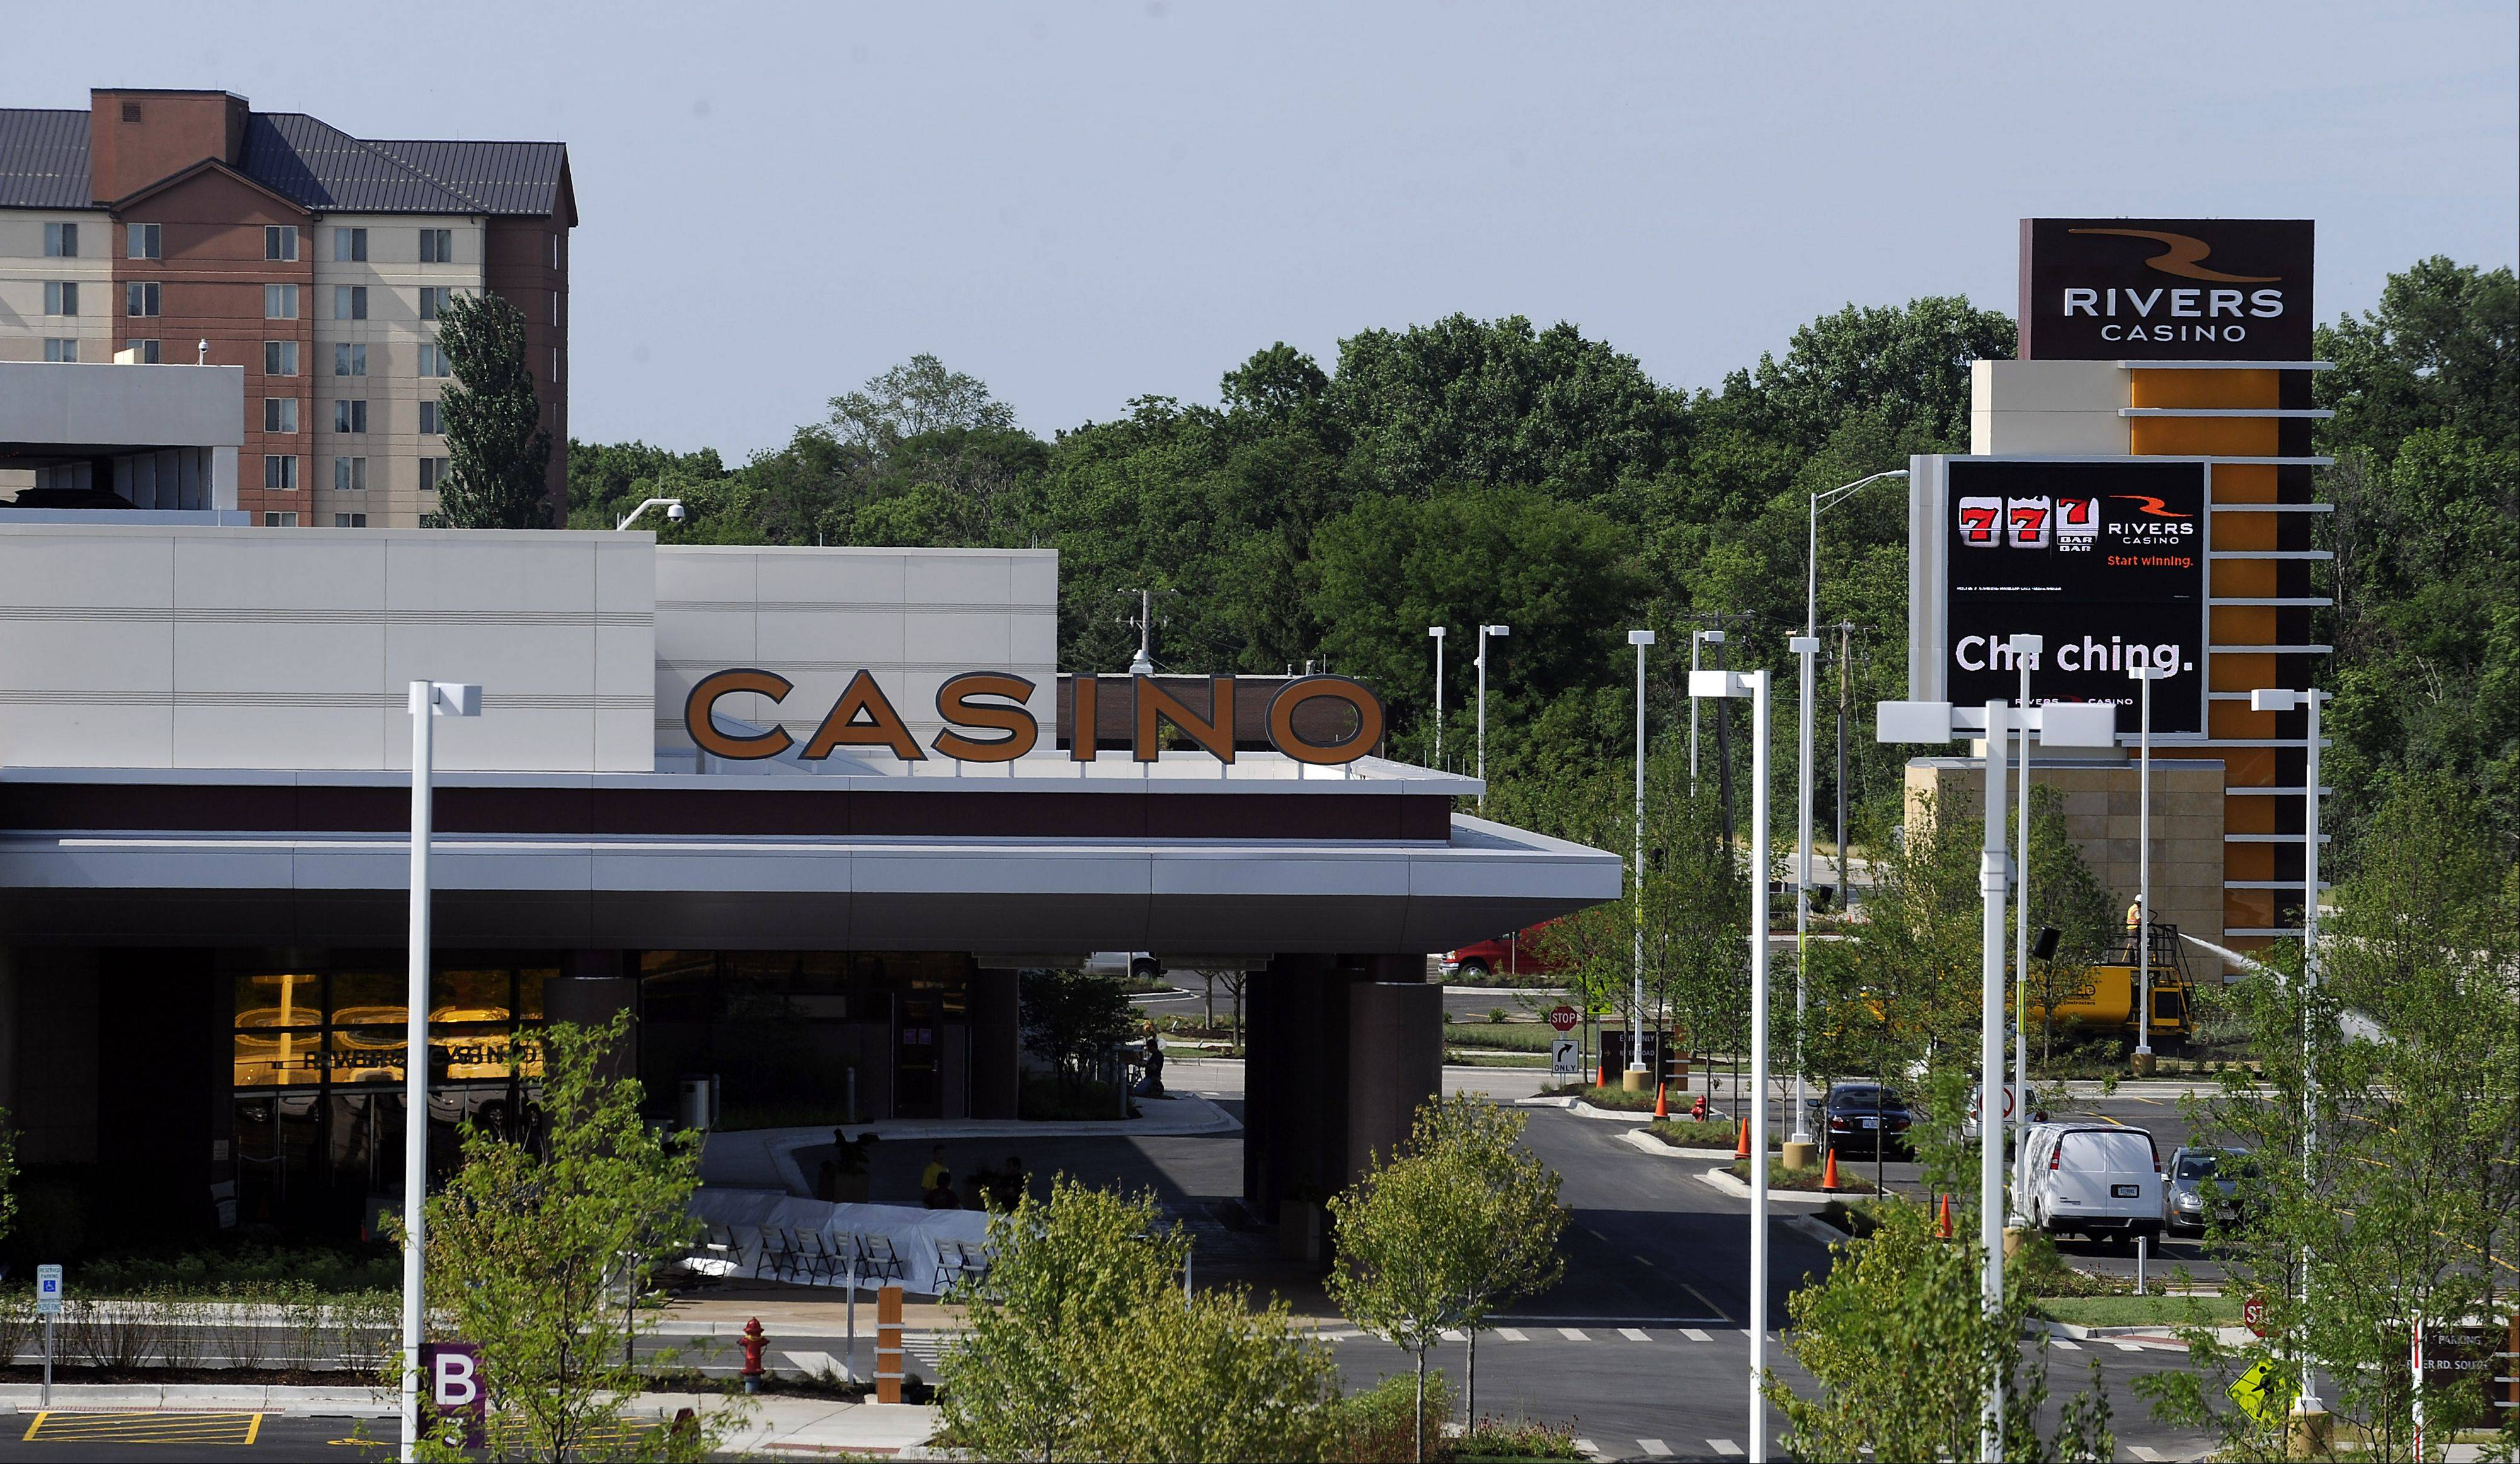 Union alleges unfair labor practices at Des Plaines casino